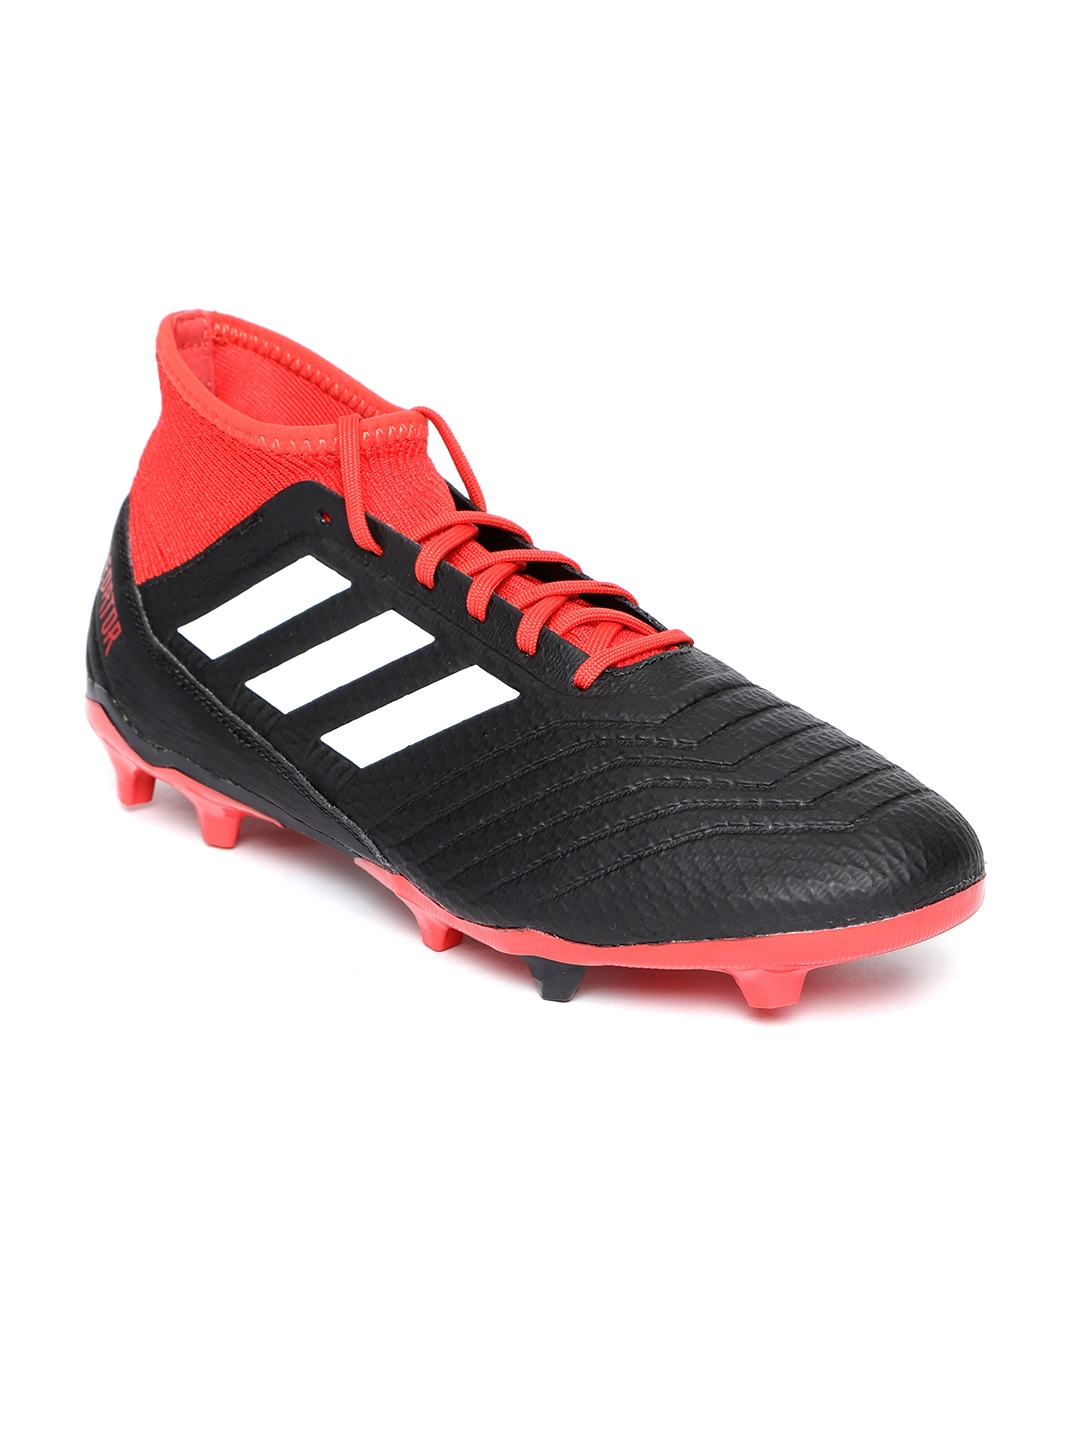 reputable site e47b6 2e14c ADIDAS Men Black   Red Predator 18.3 Firm Ground Football Shoes